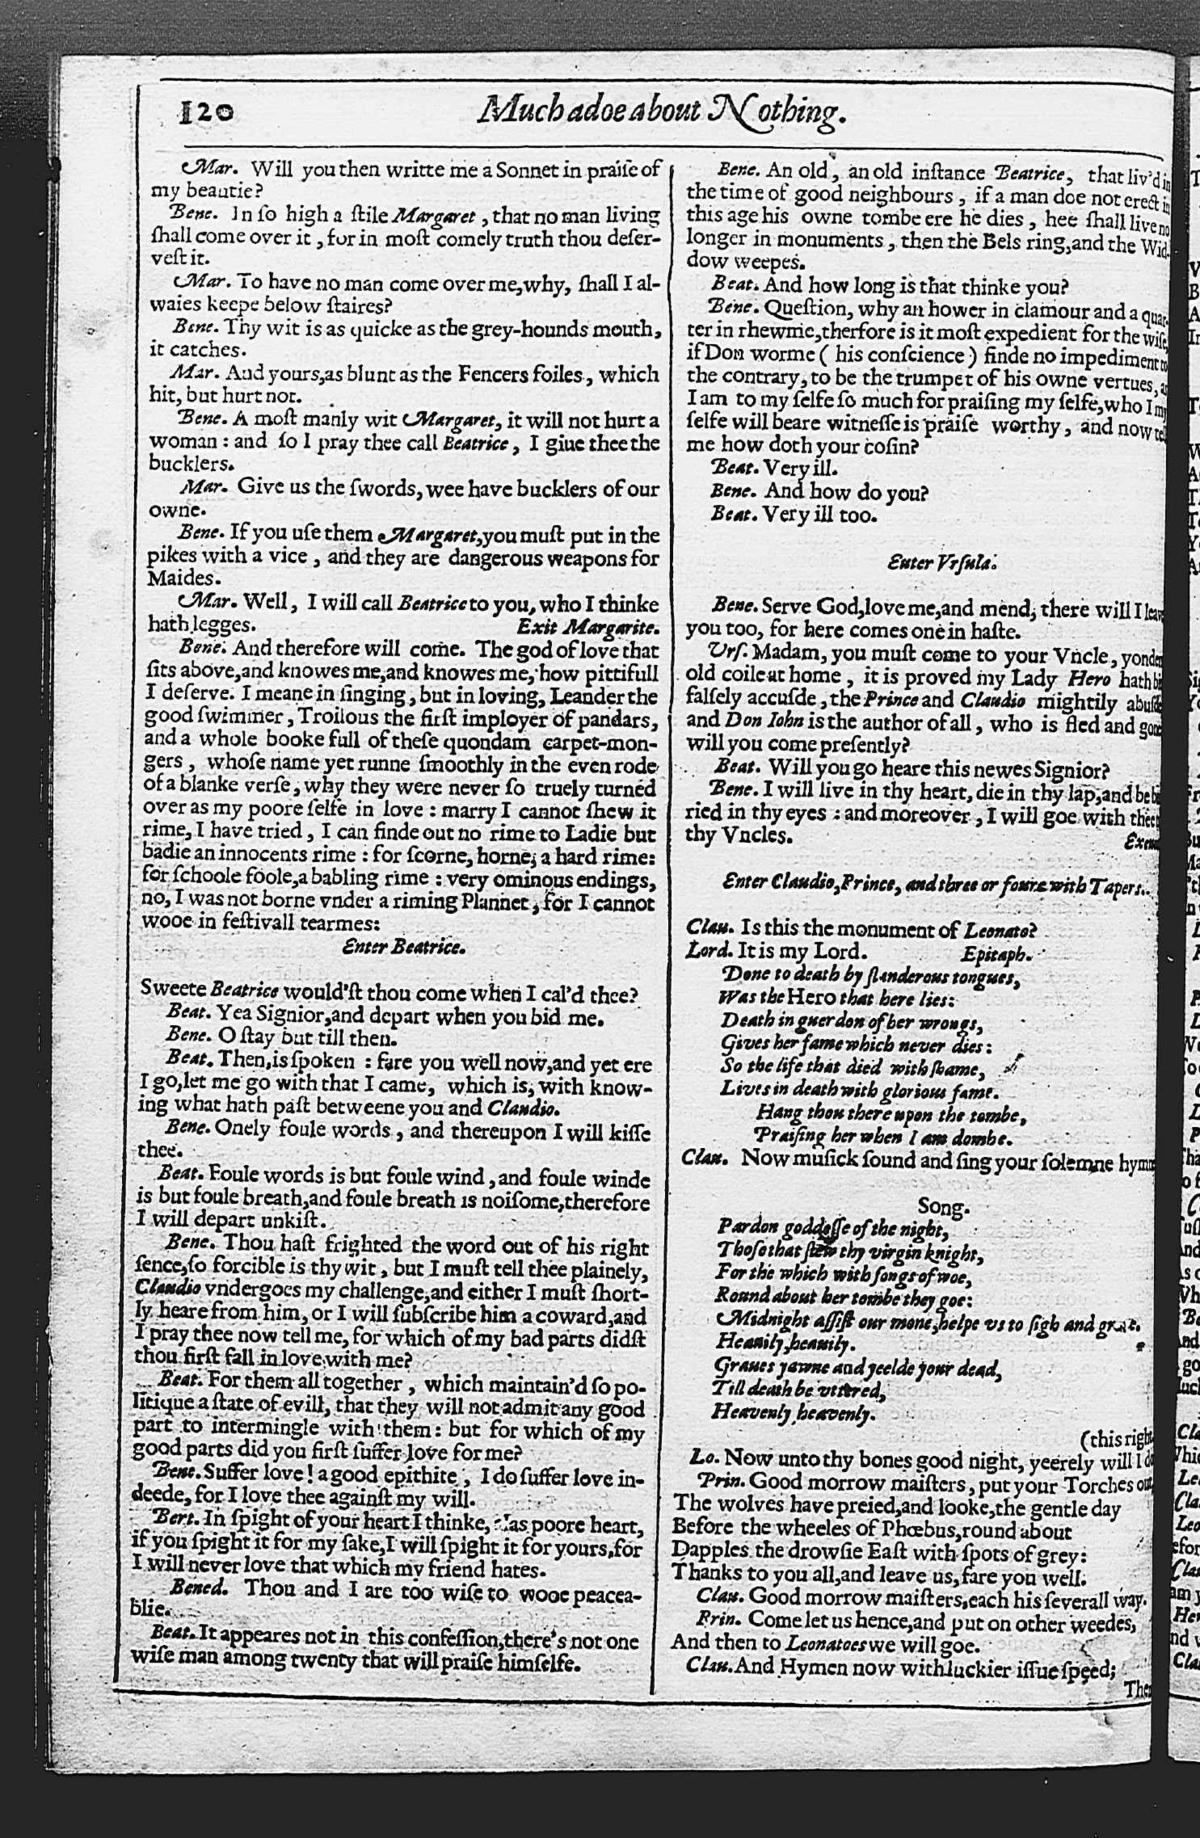 Image of Second Folio (New South Wales), page 138